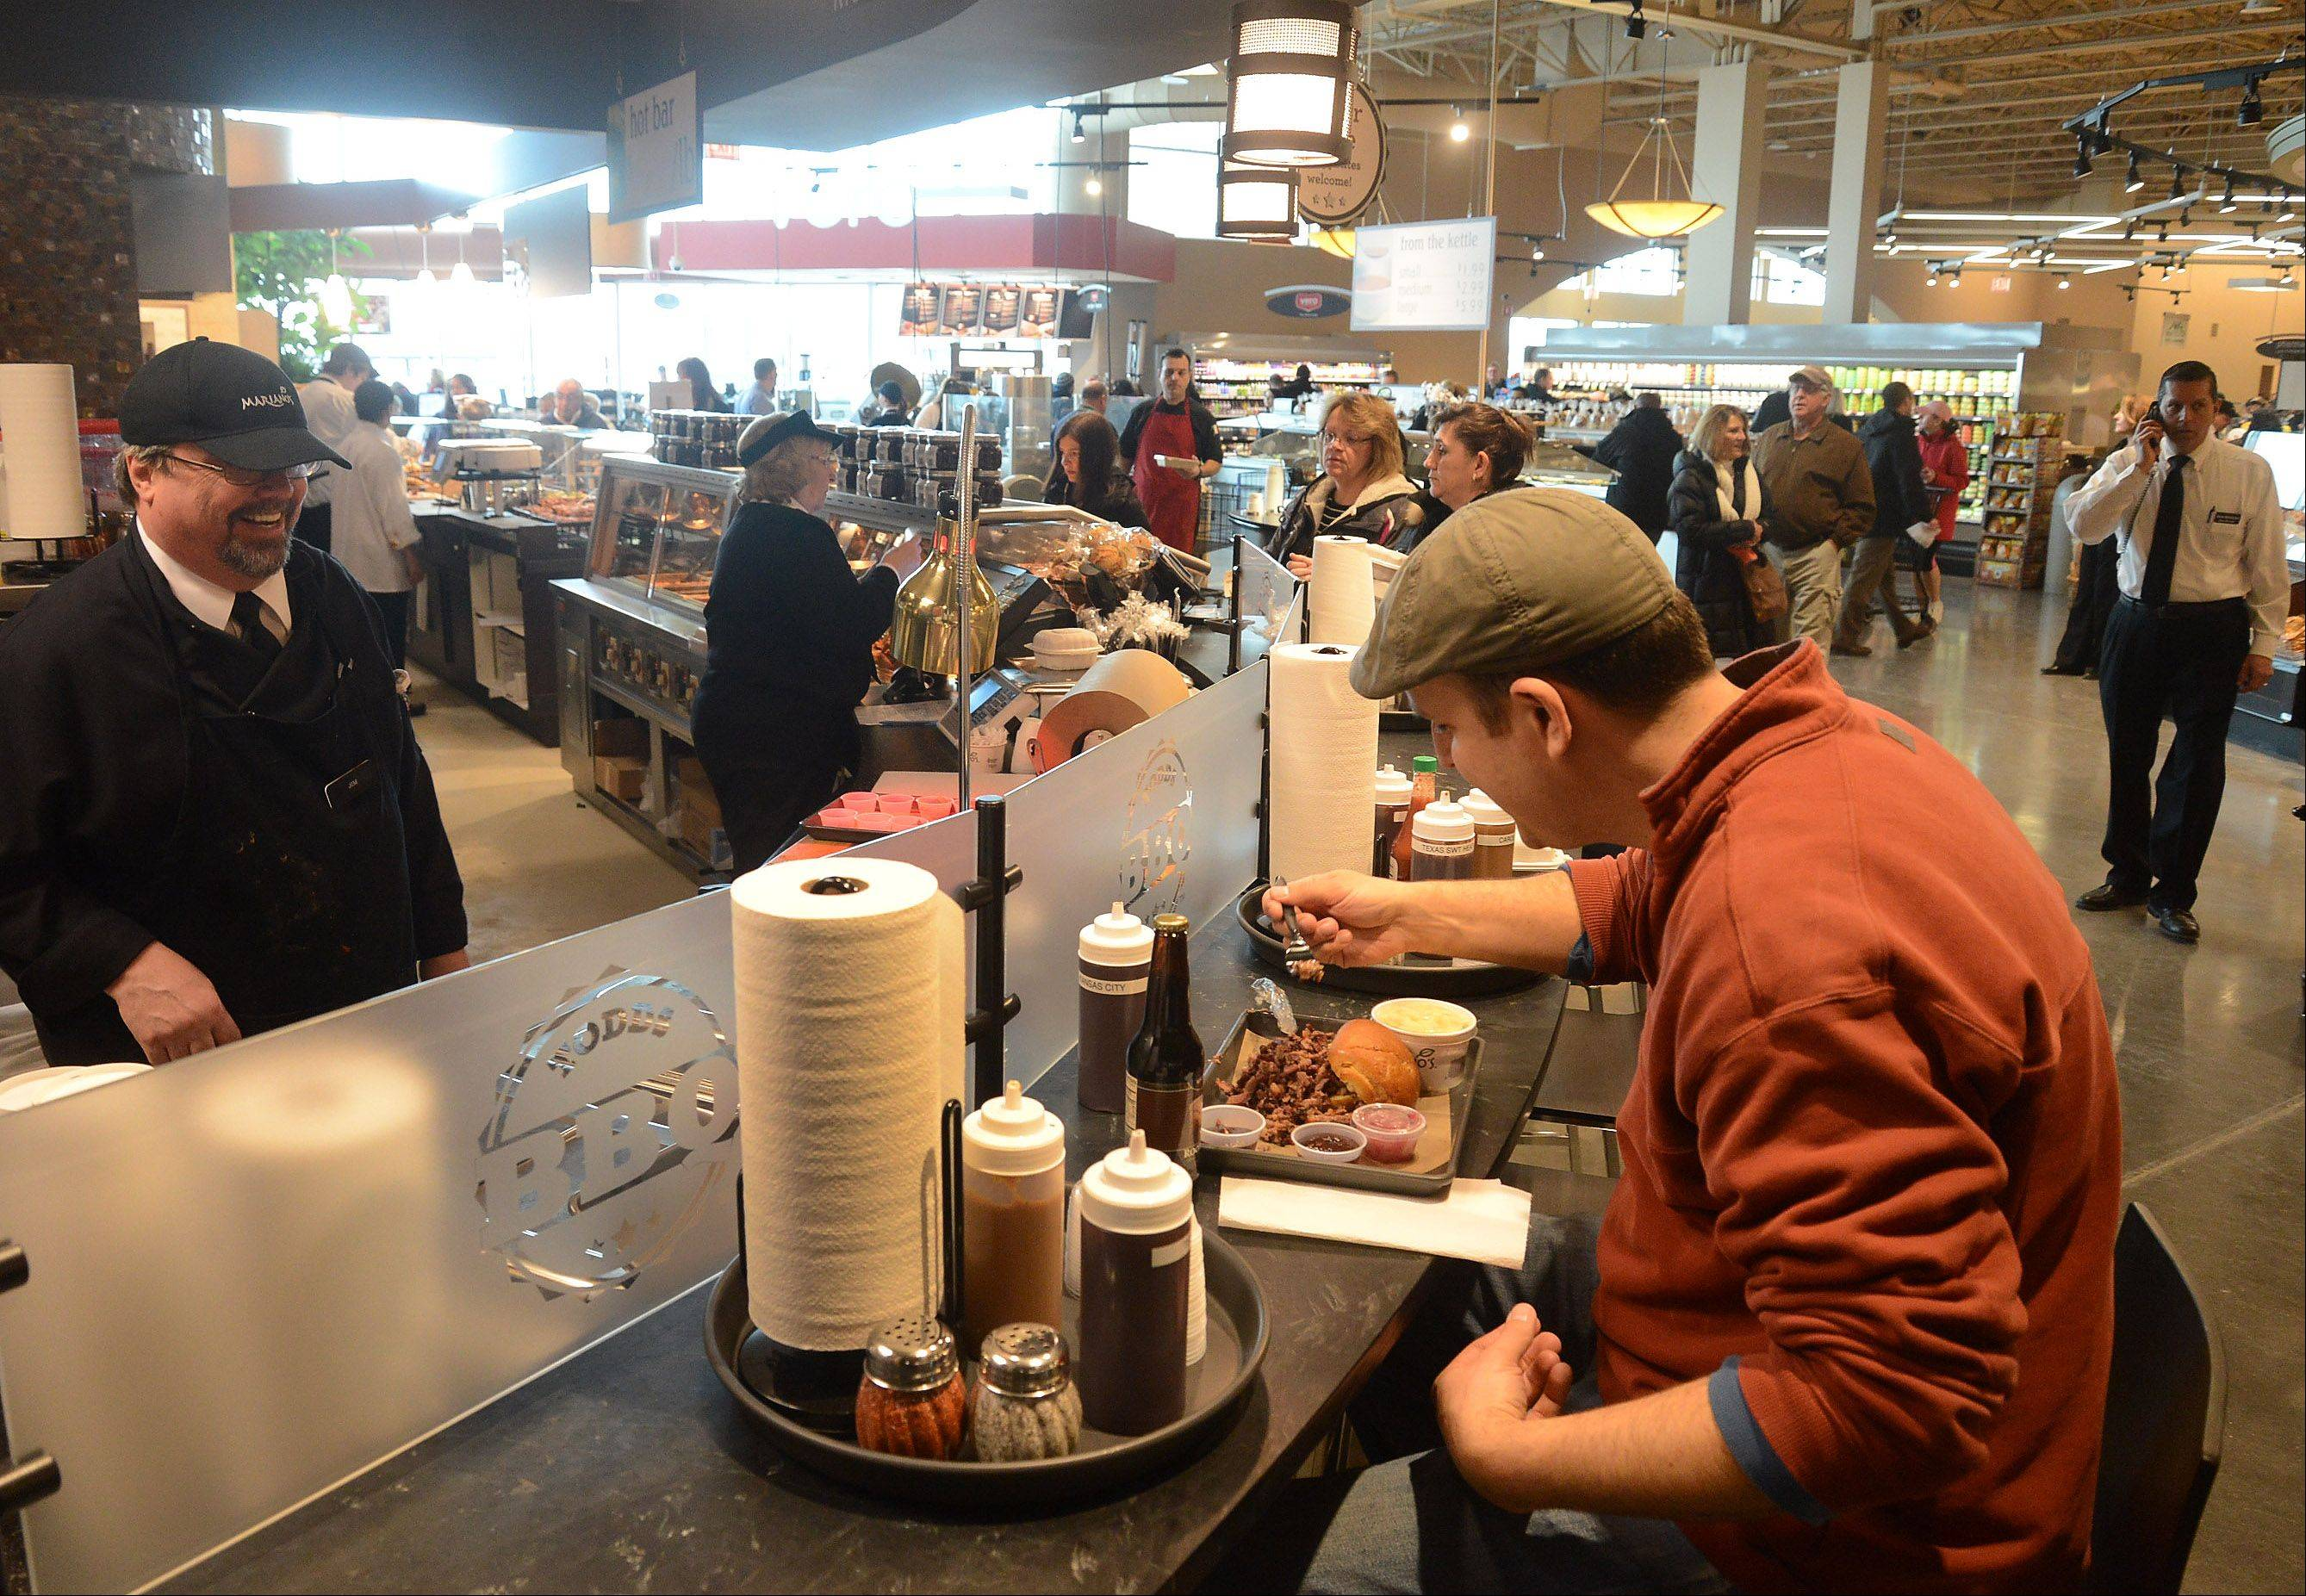 Dave Whiteside of Mount Prospect tries out the Smoked Beef Brisket sandwich at Todds BBQ inside the new Lake Zurich Mariano's grocery store that opened Tuesday.